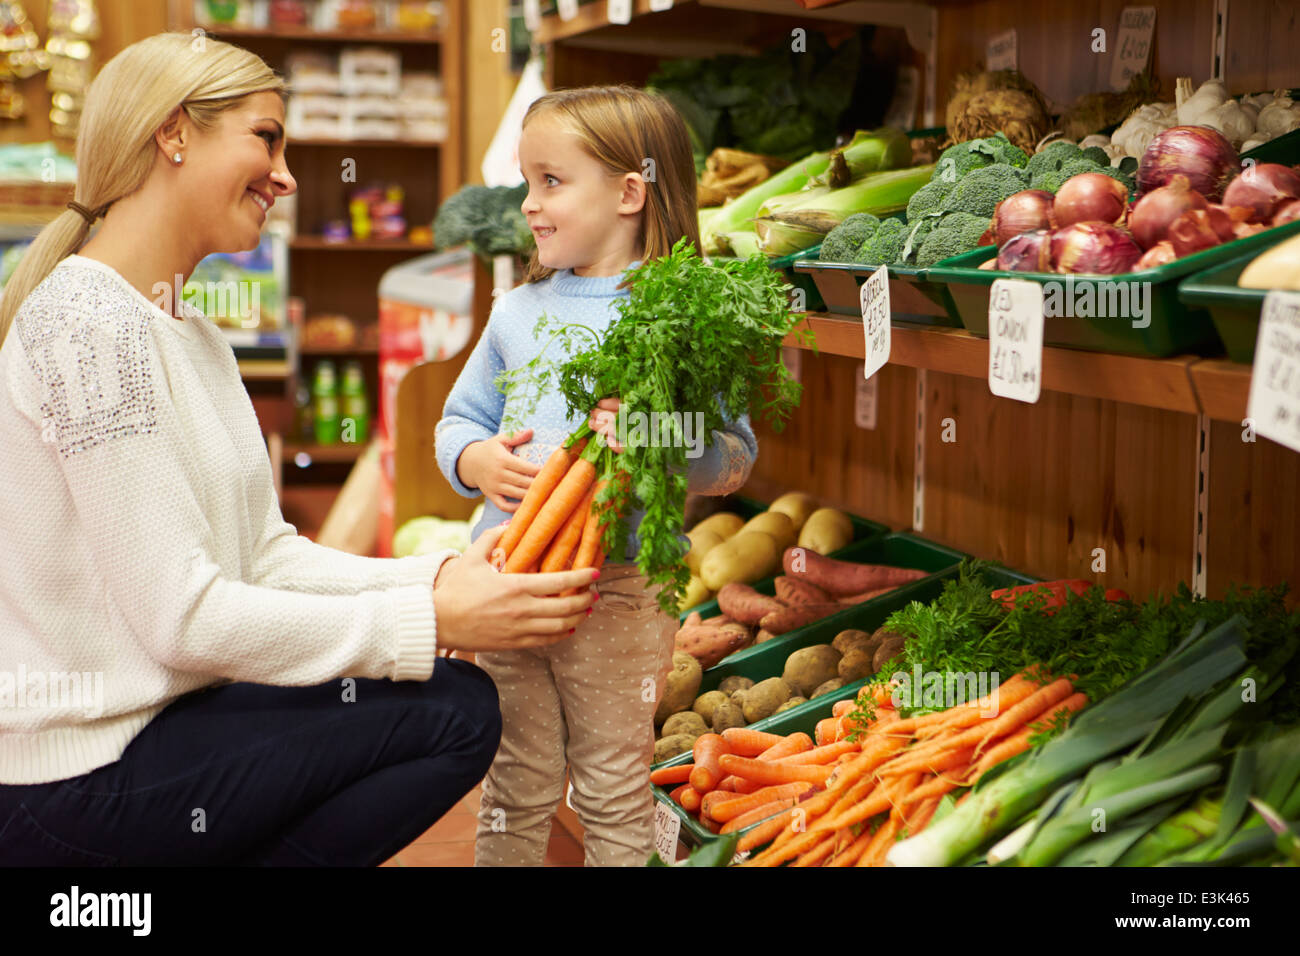 Mother And Daughter Choosing Fresh Vegetables In Farm Shop - Stock Image